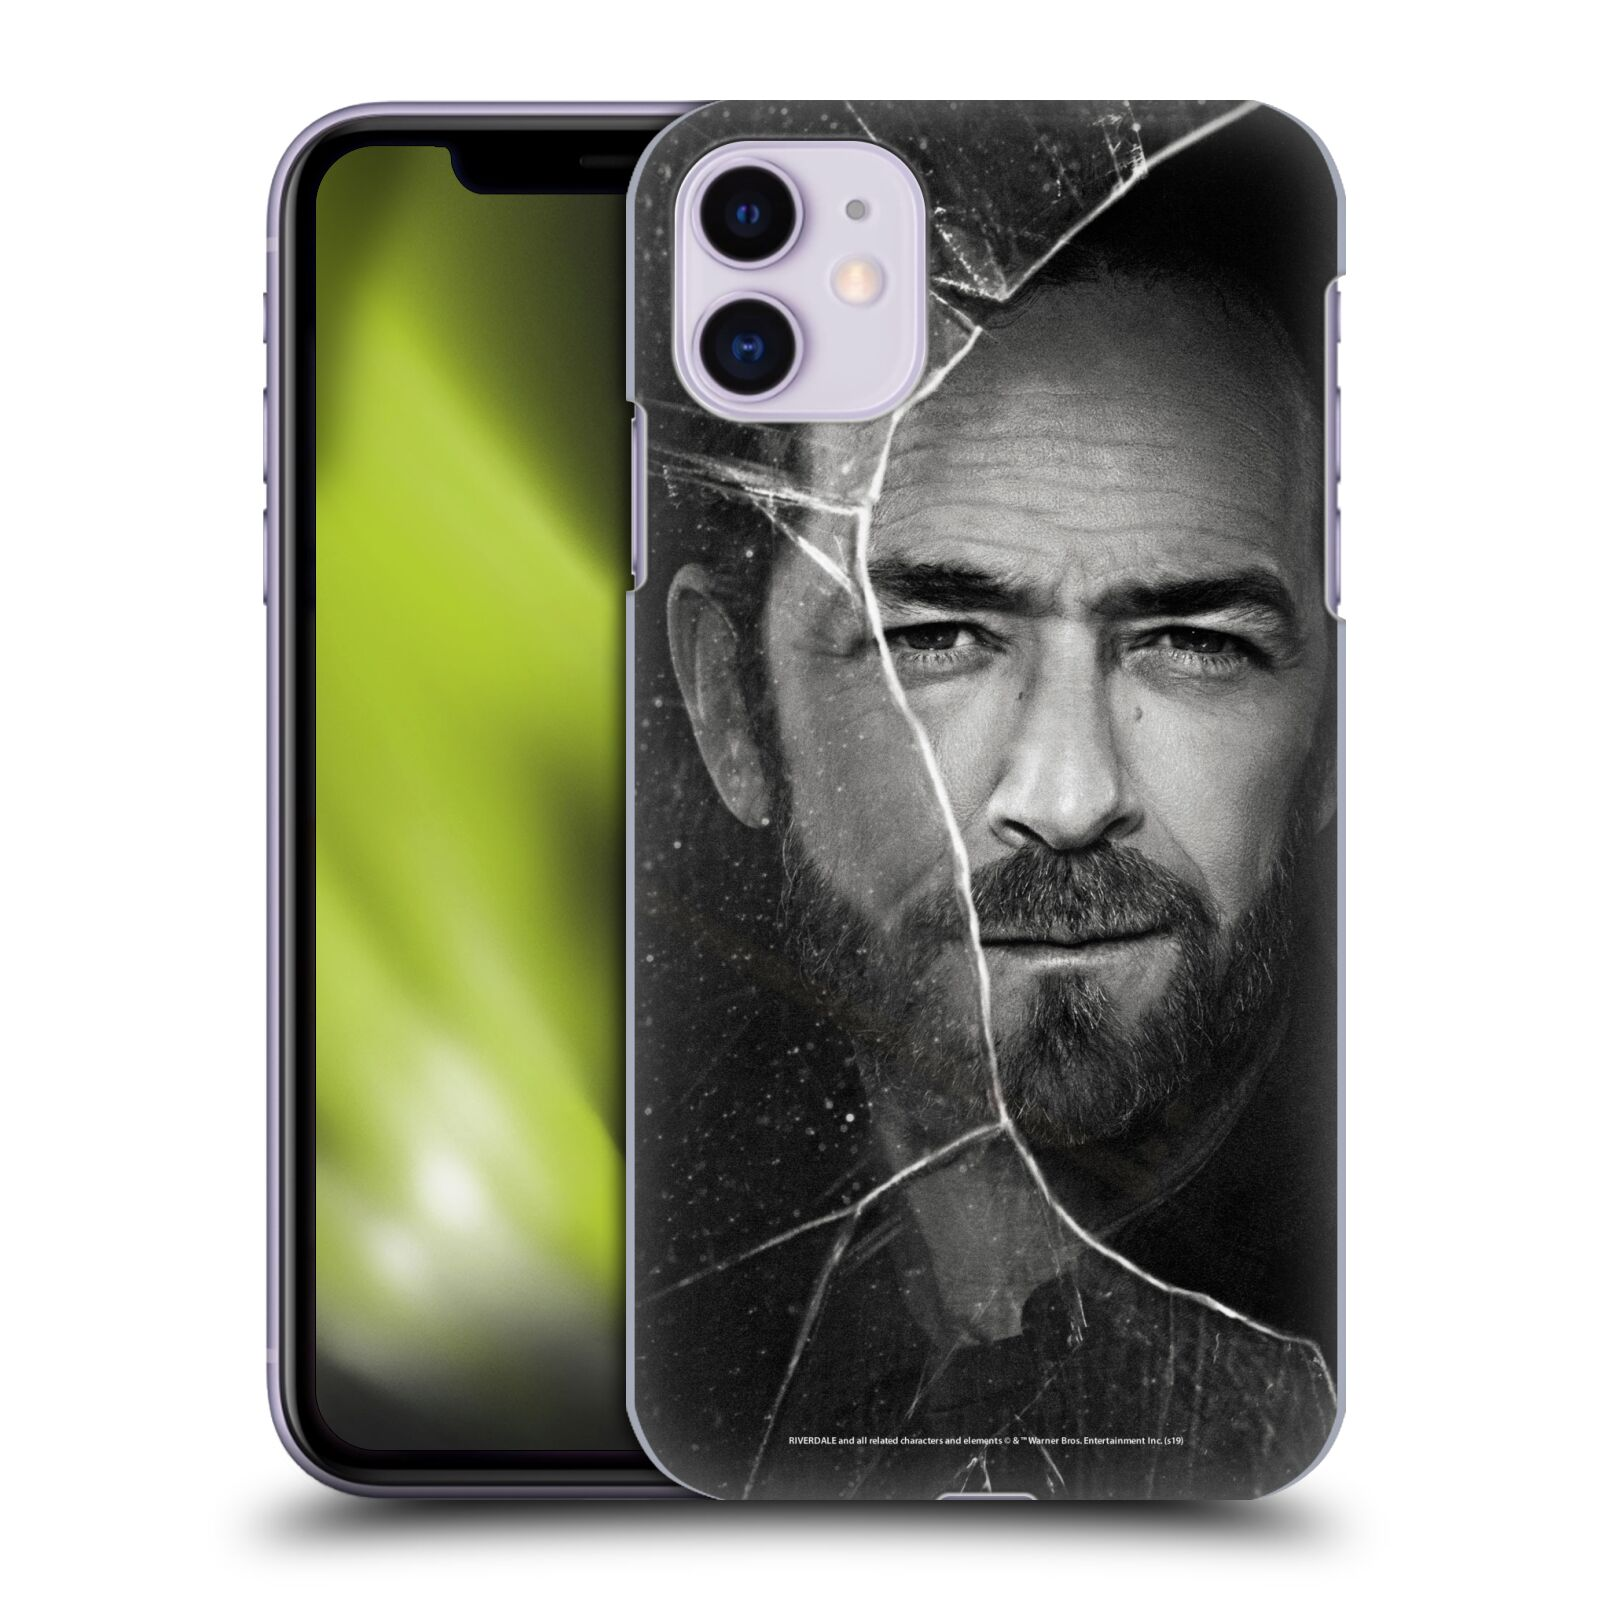 Official Riverdale Broken Glass Portraits Fred Andrews Back Case for Apple iPhone 11